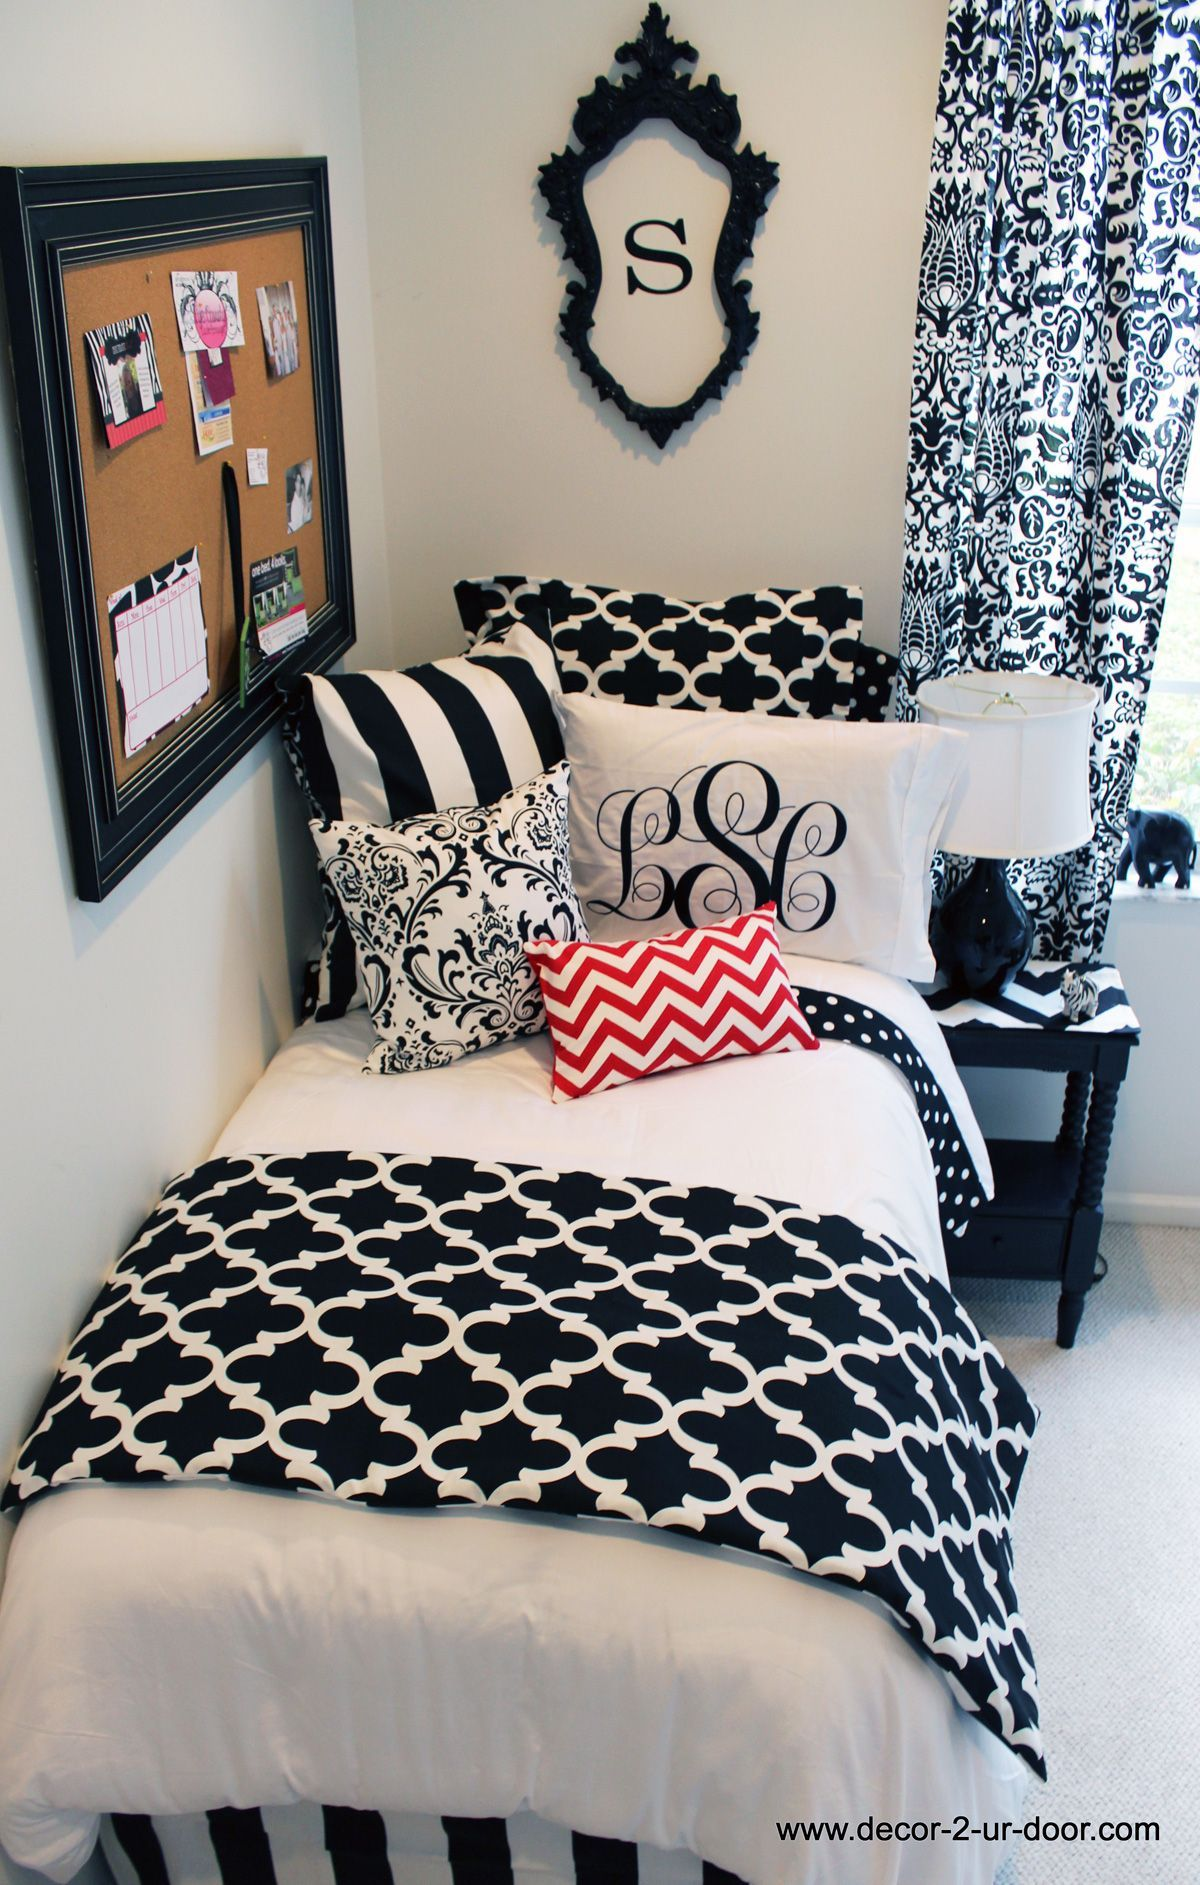 Below are white bedroom ideas that can